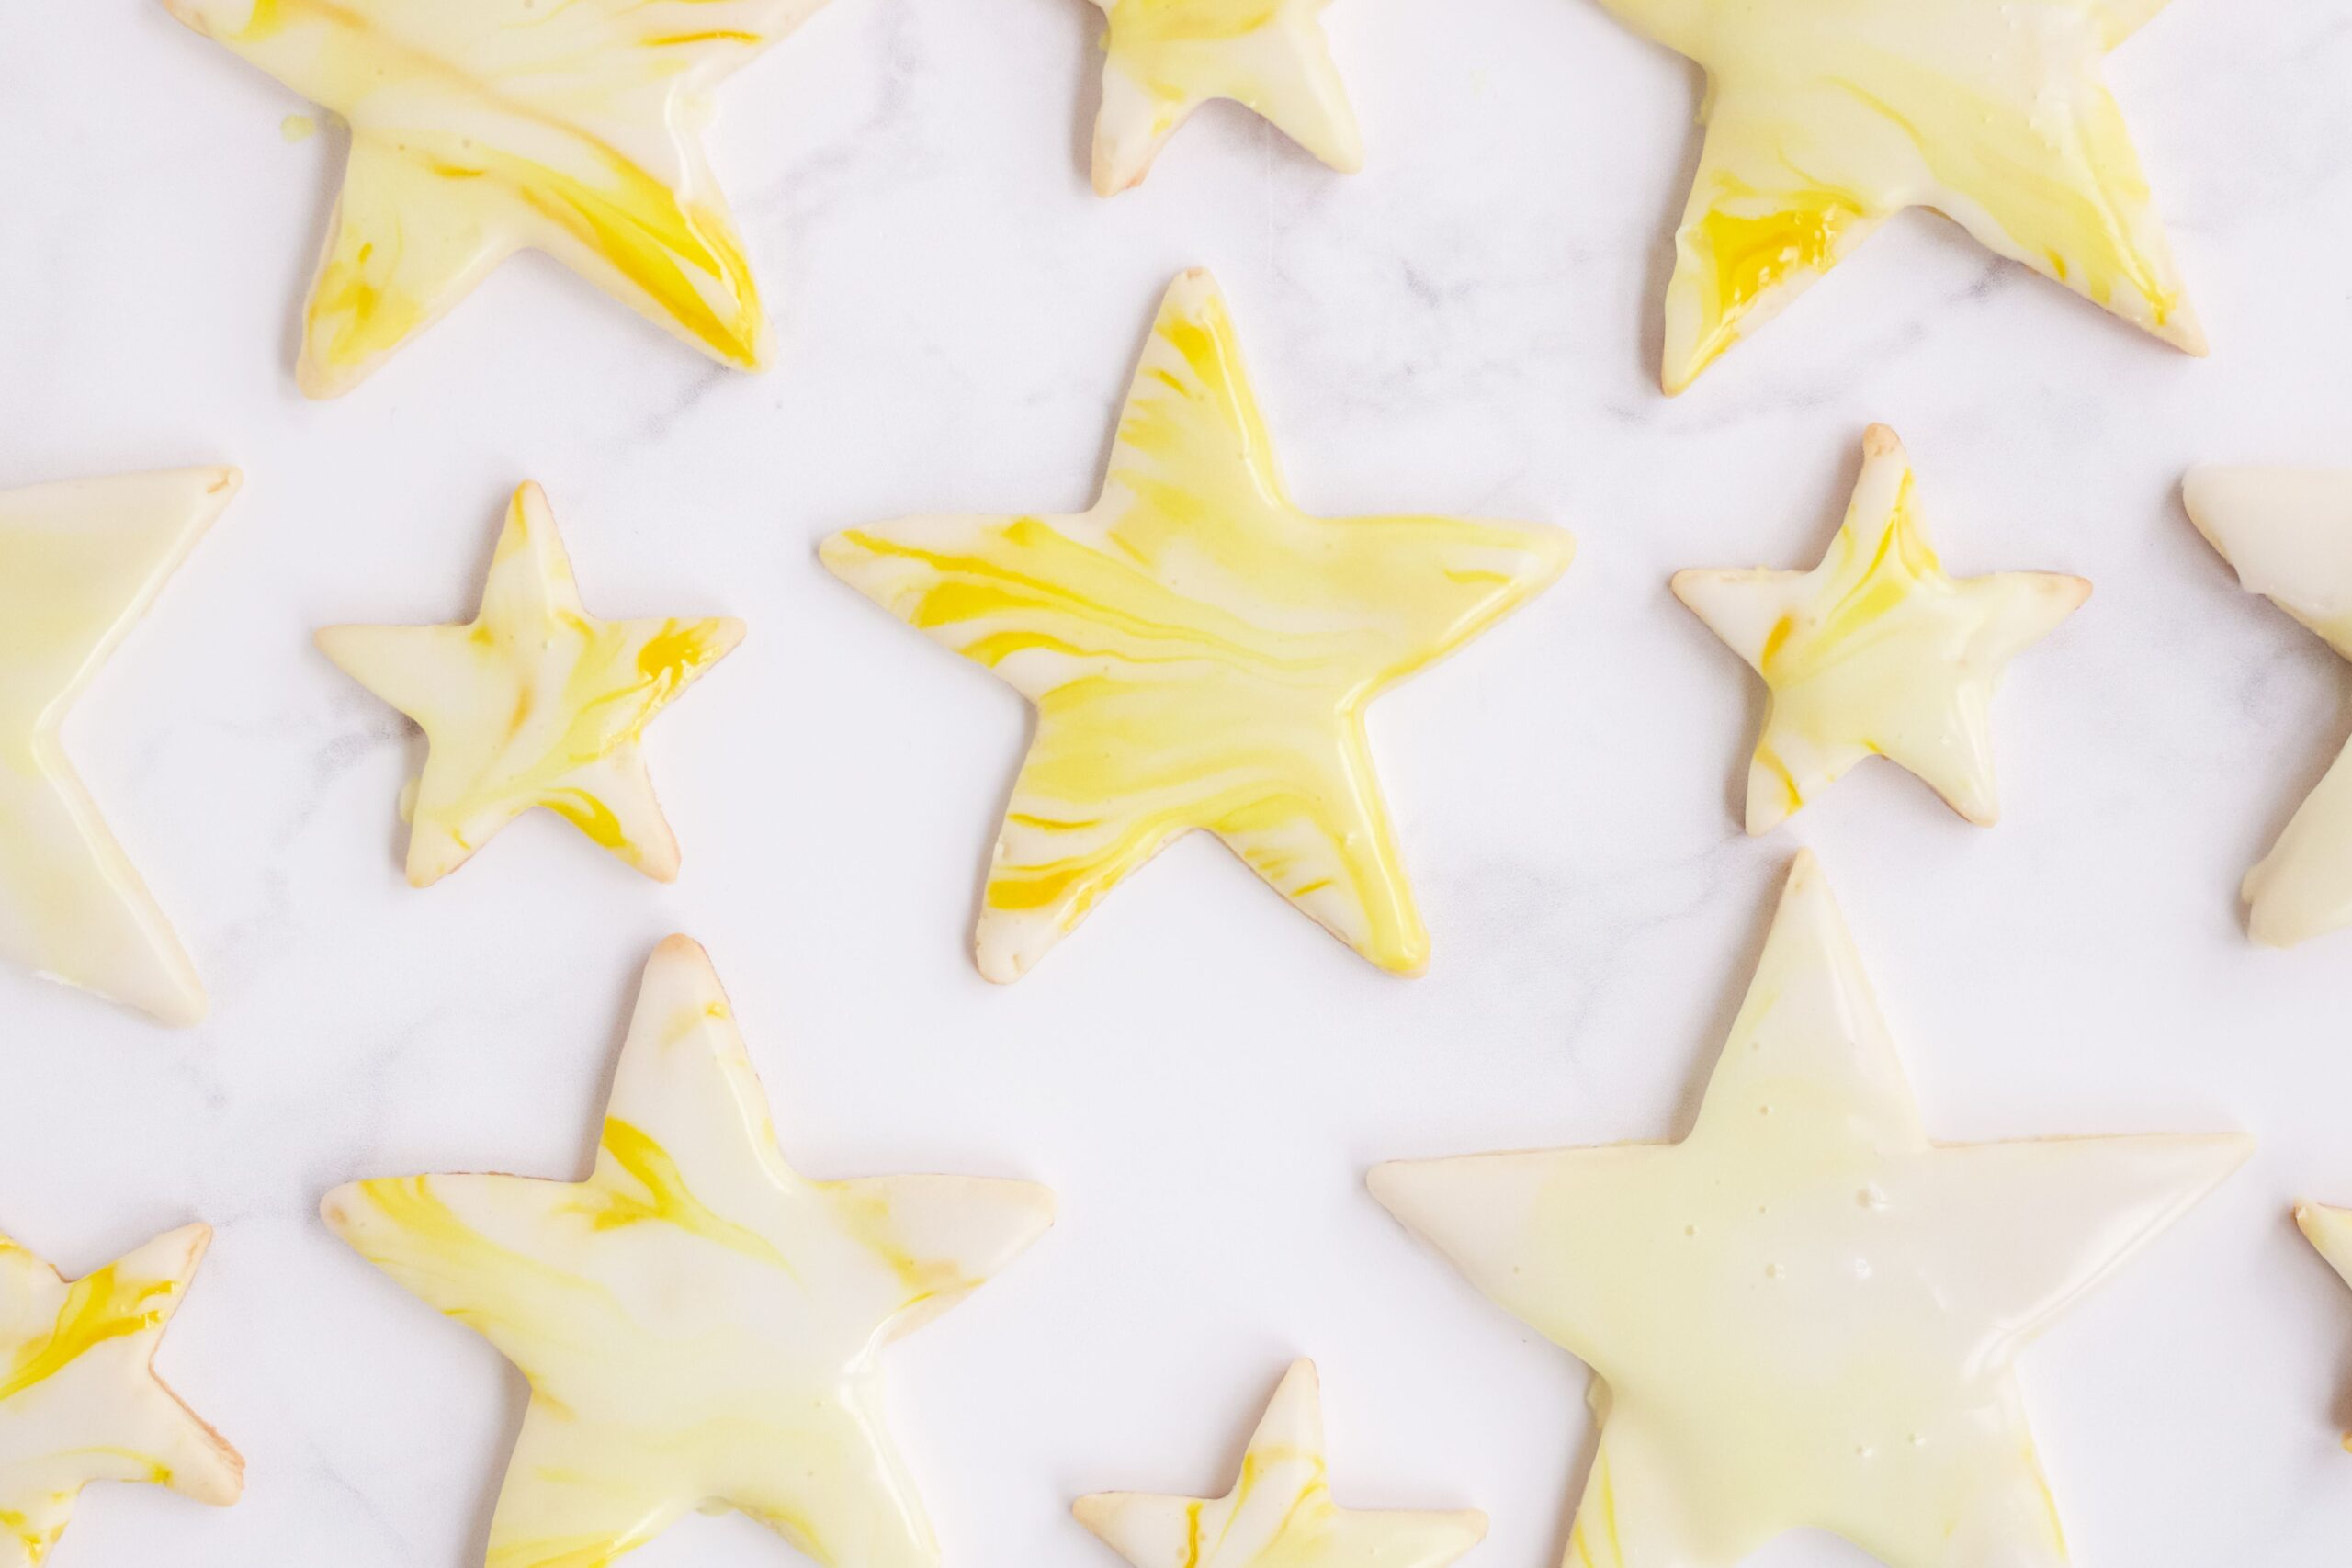 A plate of star shaped sugar cookies topped with marble icing.